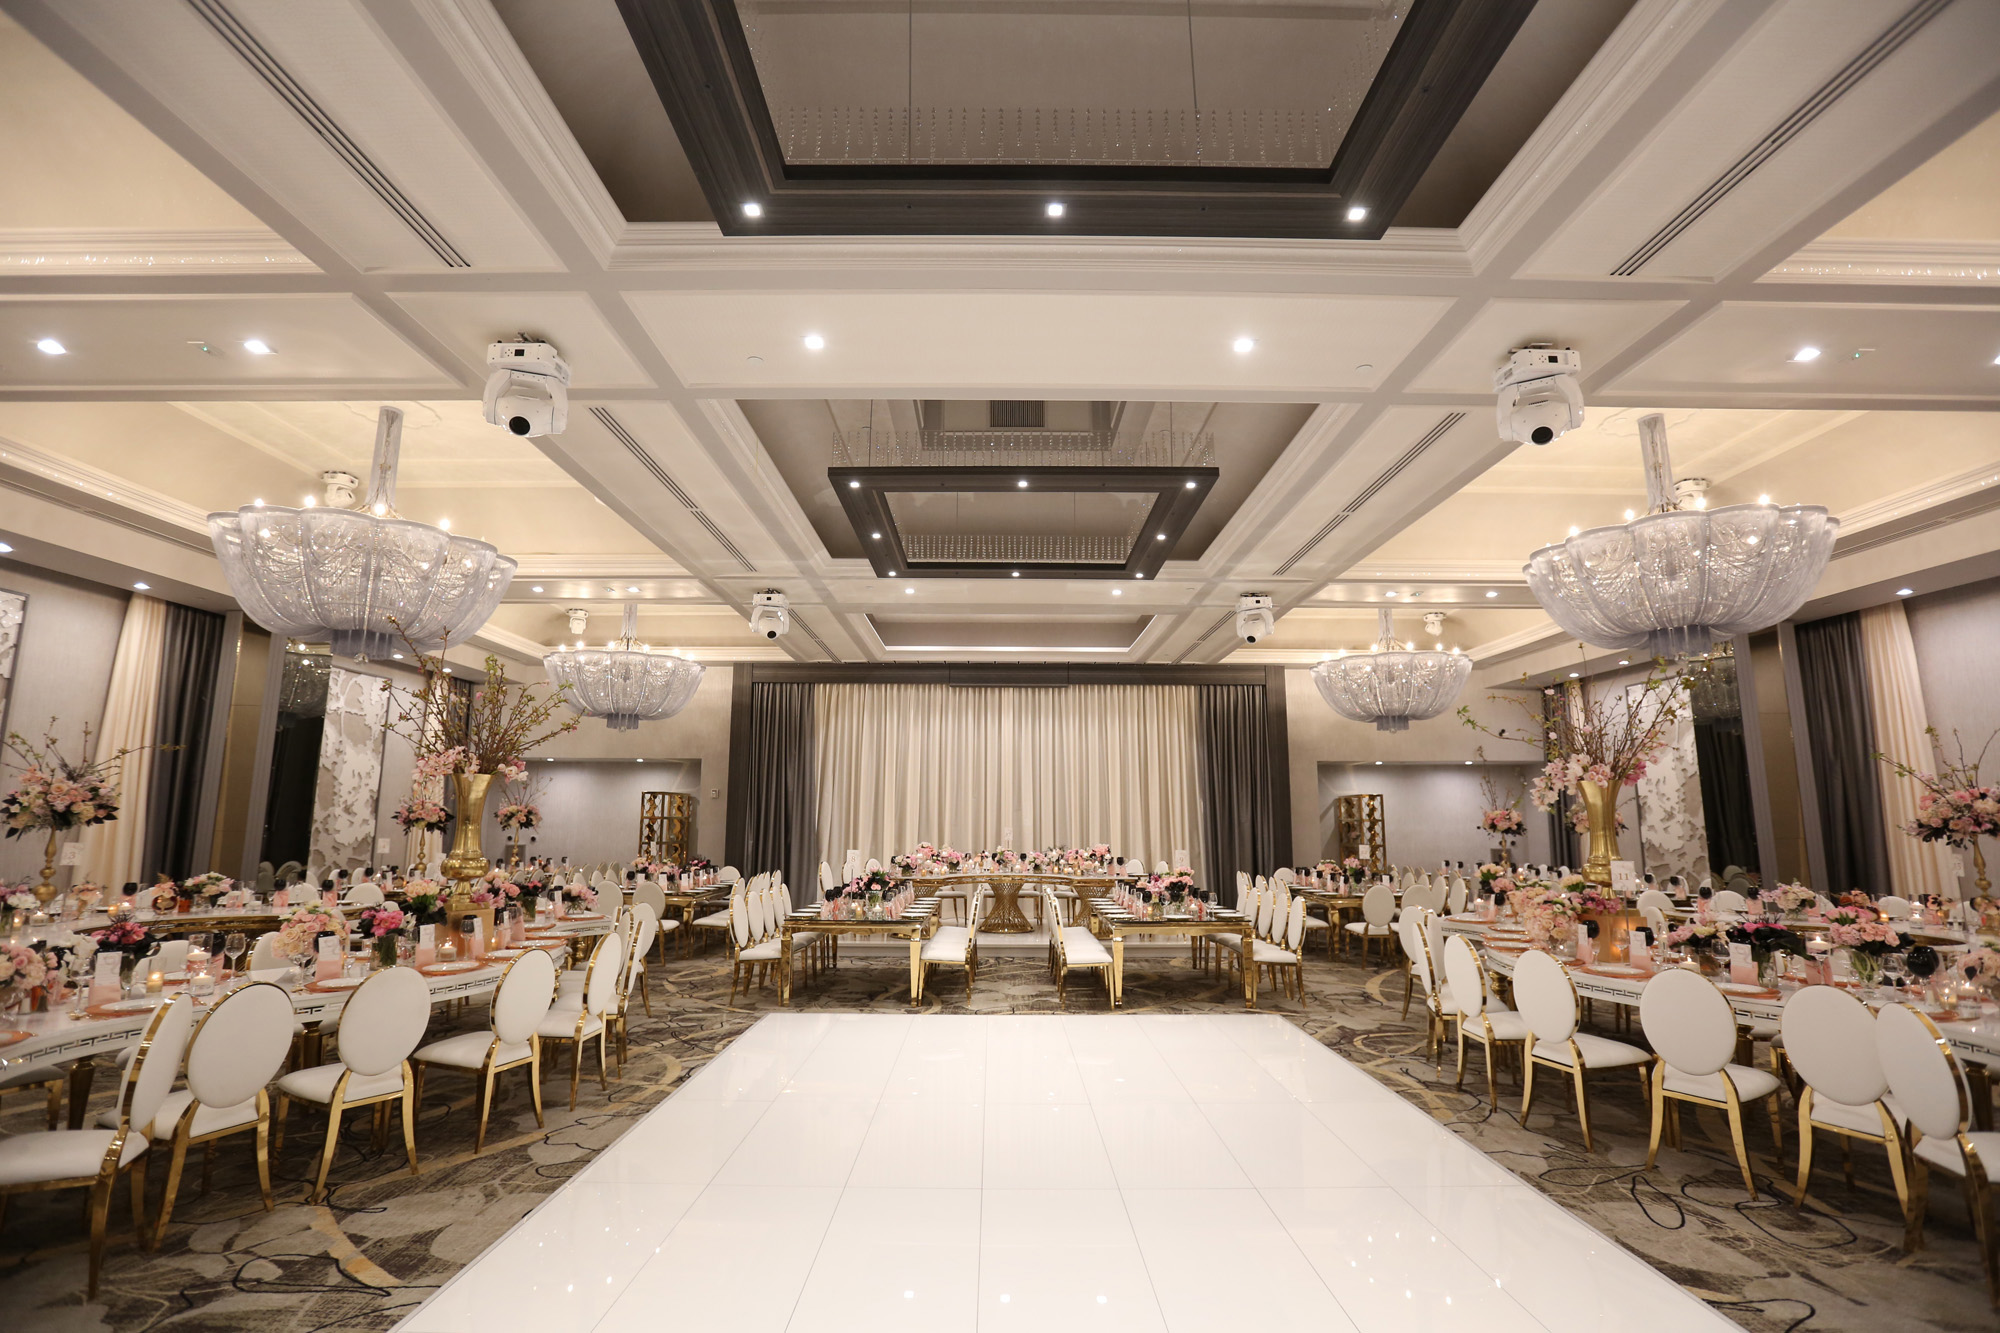 Modern wedding venue legacy ballroom labanquets view more in gallery junglespirit Choice Image